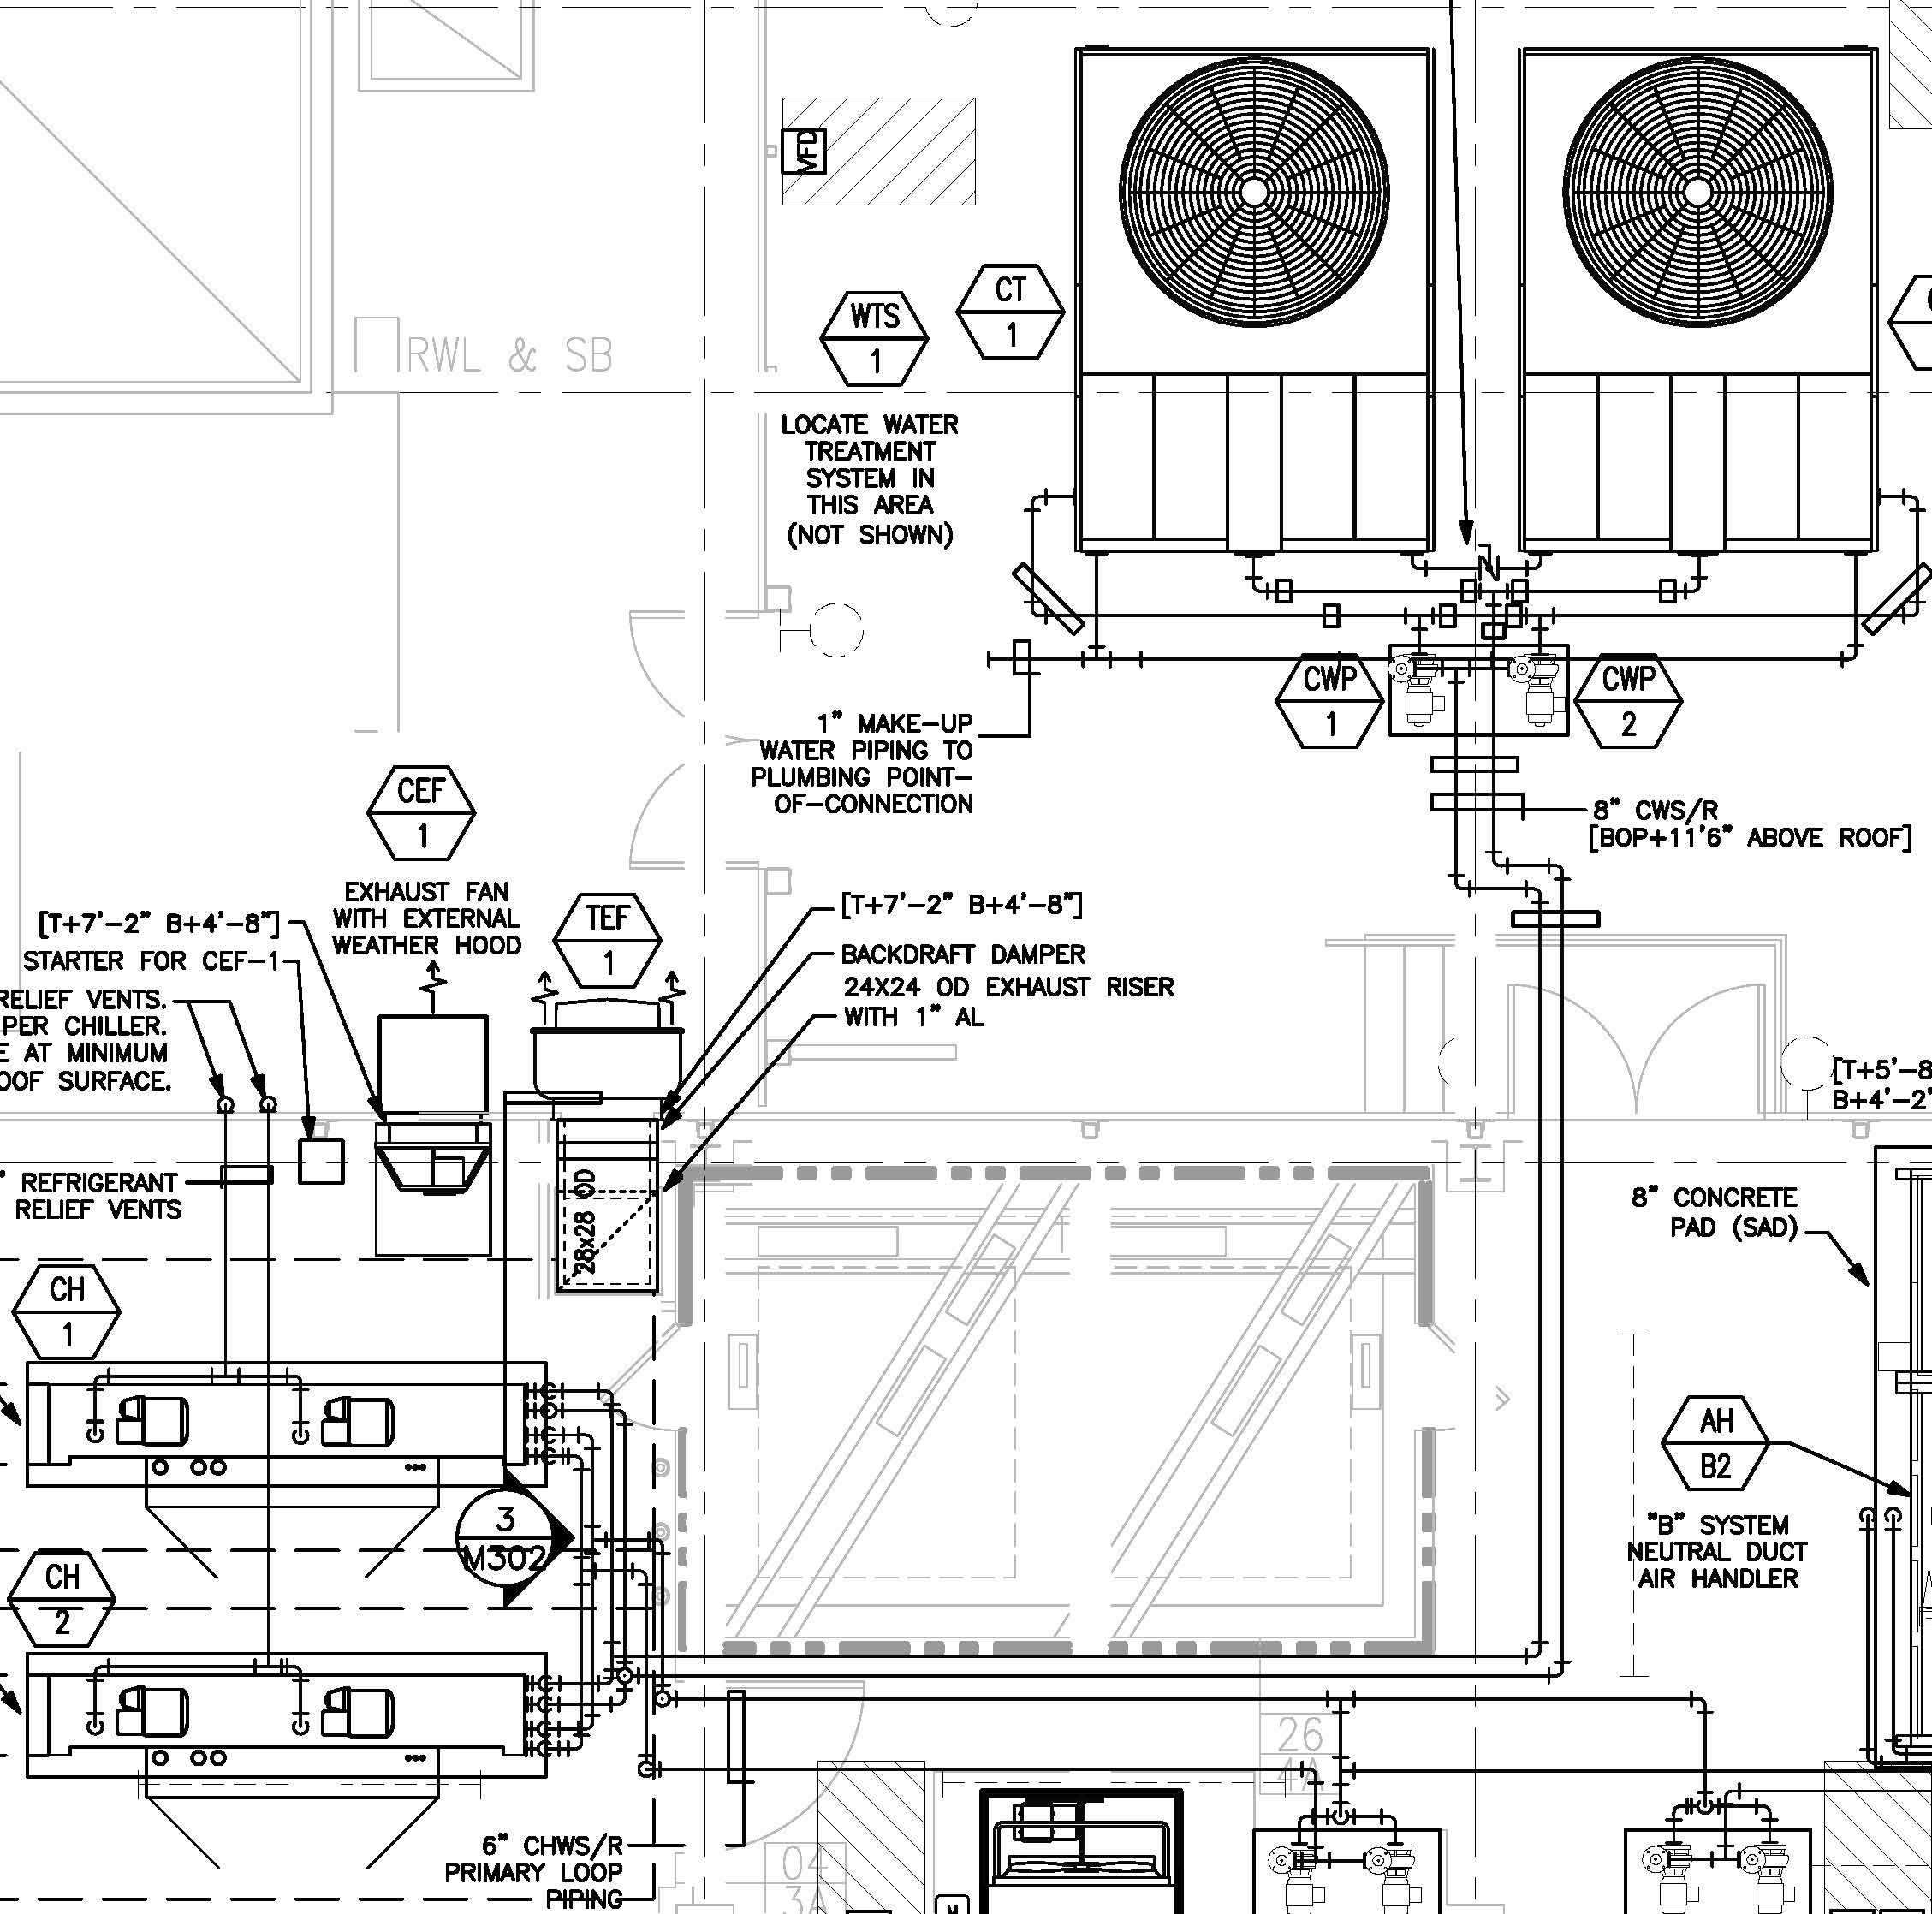 Truck Air System Diagram Well Pump House Plans and System Diagrams Breaking the Rules A Step Of Truck Air System Diagram